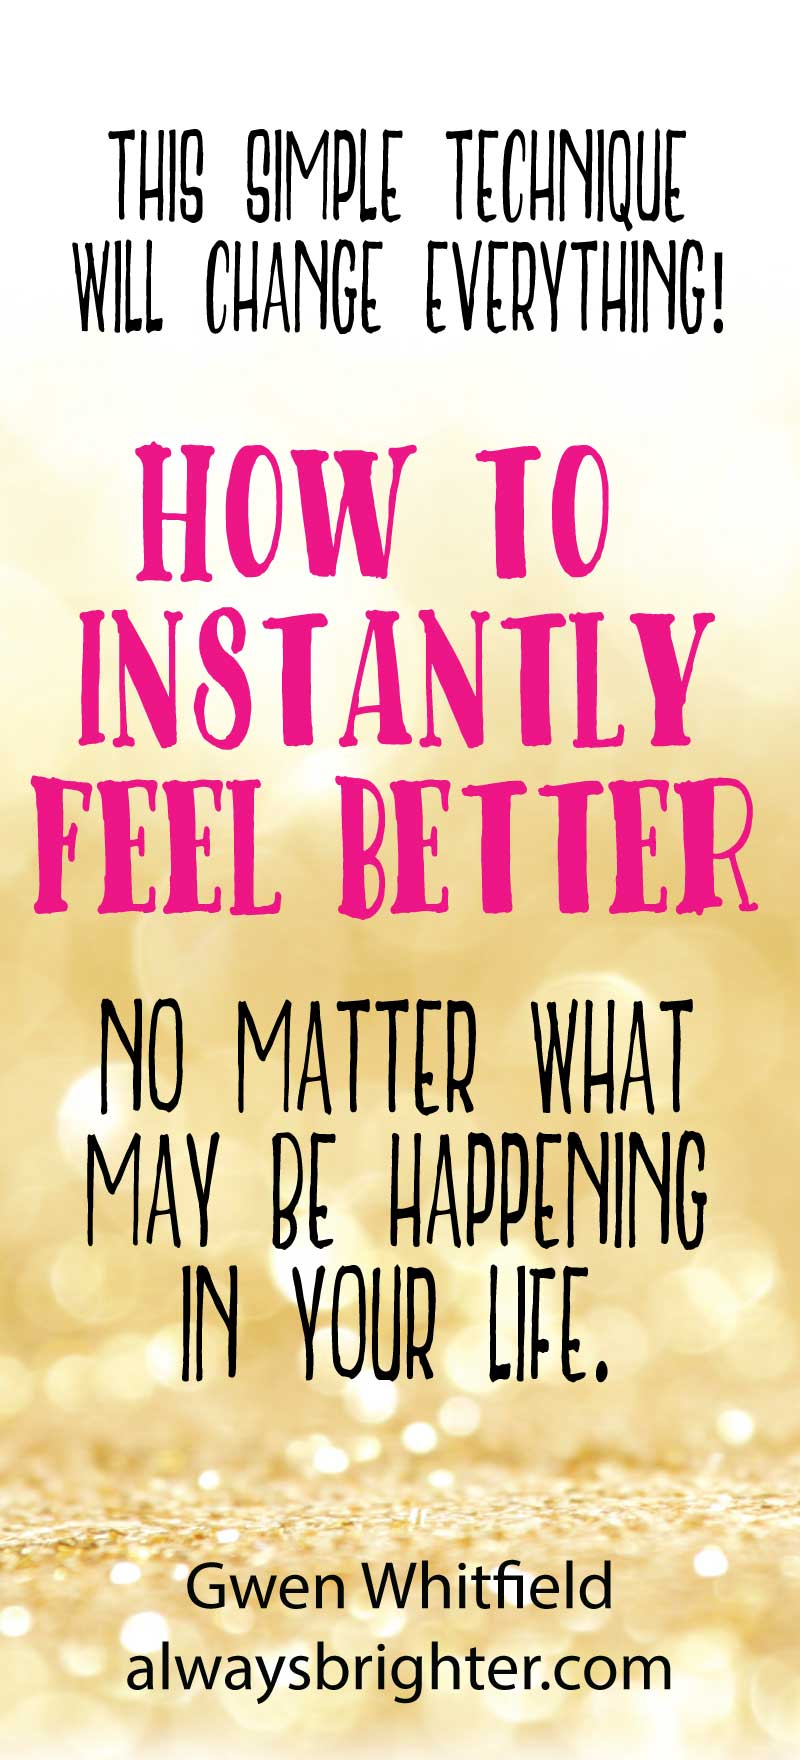 HOW TO FEEL BETTER with the Better Feeling Thought Technique. Do you ever say that you are your own worst critic, worrying about how you are going to rise to the occasion or even just make ends meet? This simple technique will change your life!